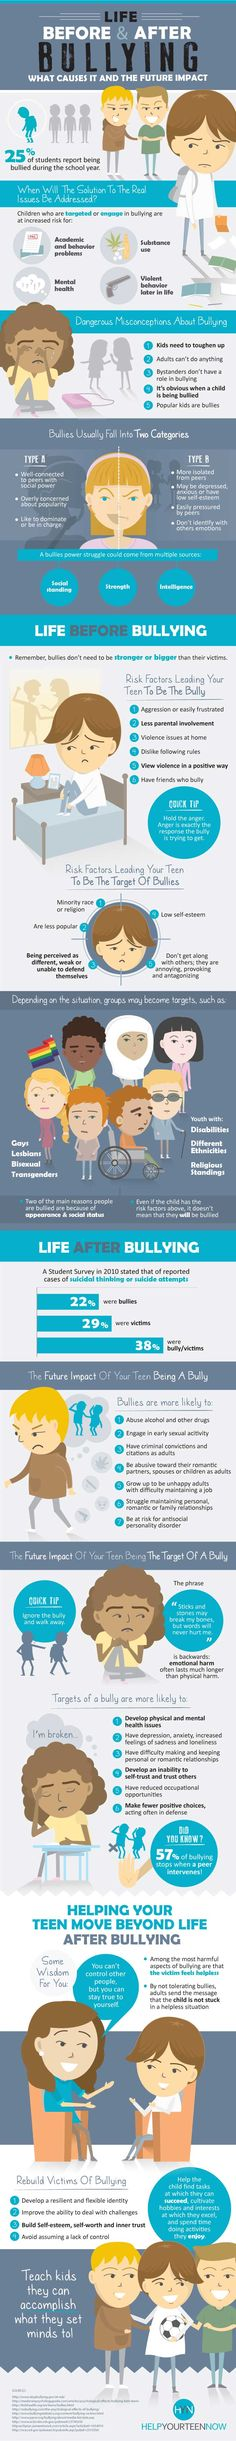 The issues caused by bullying have always been a threat to the well-being of teenagers and children on both sides. Bullying impacts both the victim and the bully for years to come. In the following infographic, the folks atHelp Your Teen Now have concluded that the events leading up to a teen becoming a bully is just as important to understand as the issues caused afterwards.